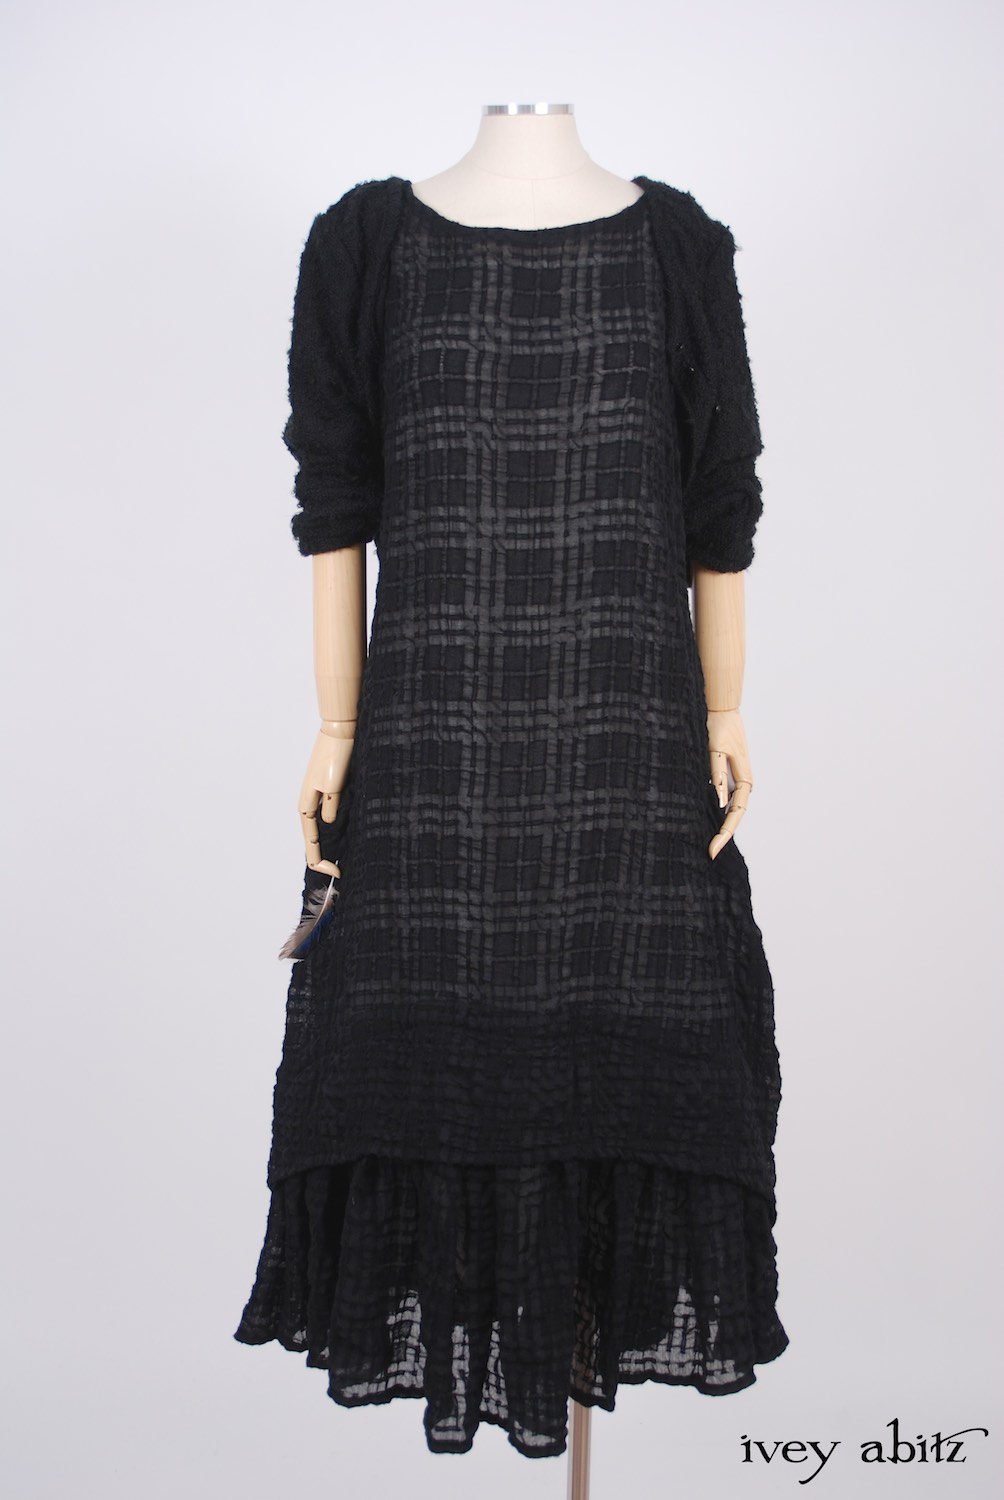 Ivey Abitz - Elliot Jacket in Blackbird Bouclé Knit  - Blanchefleur Frock in Blackbird Plaid Challis, High Water Length  - Cilla Slip Frock in Dove Striped Voile, Flood Length